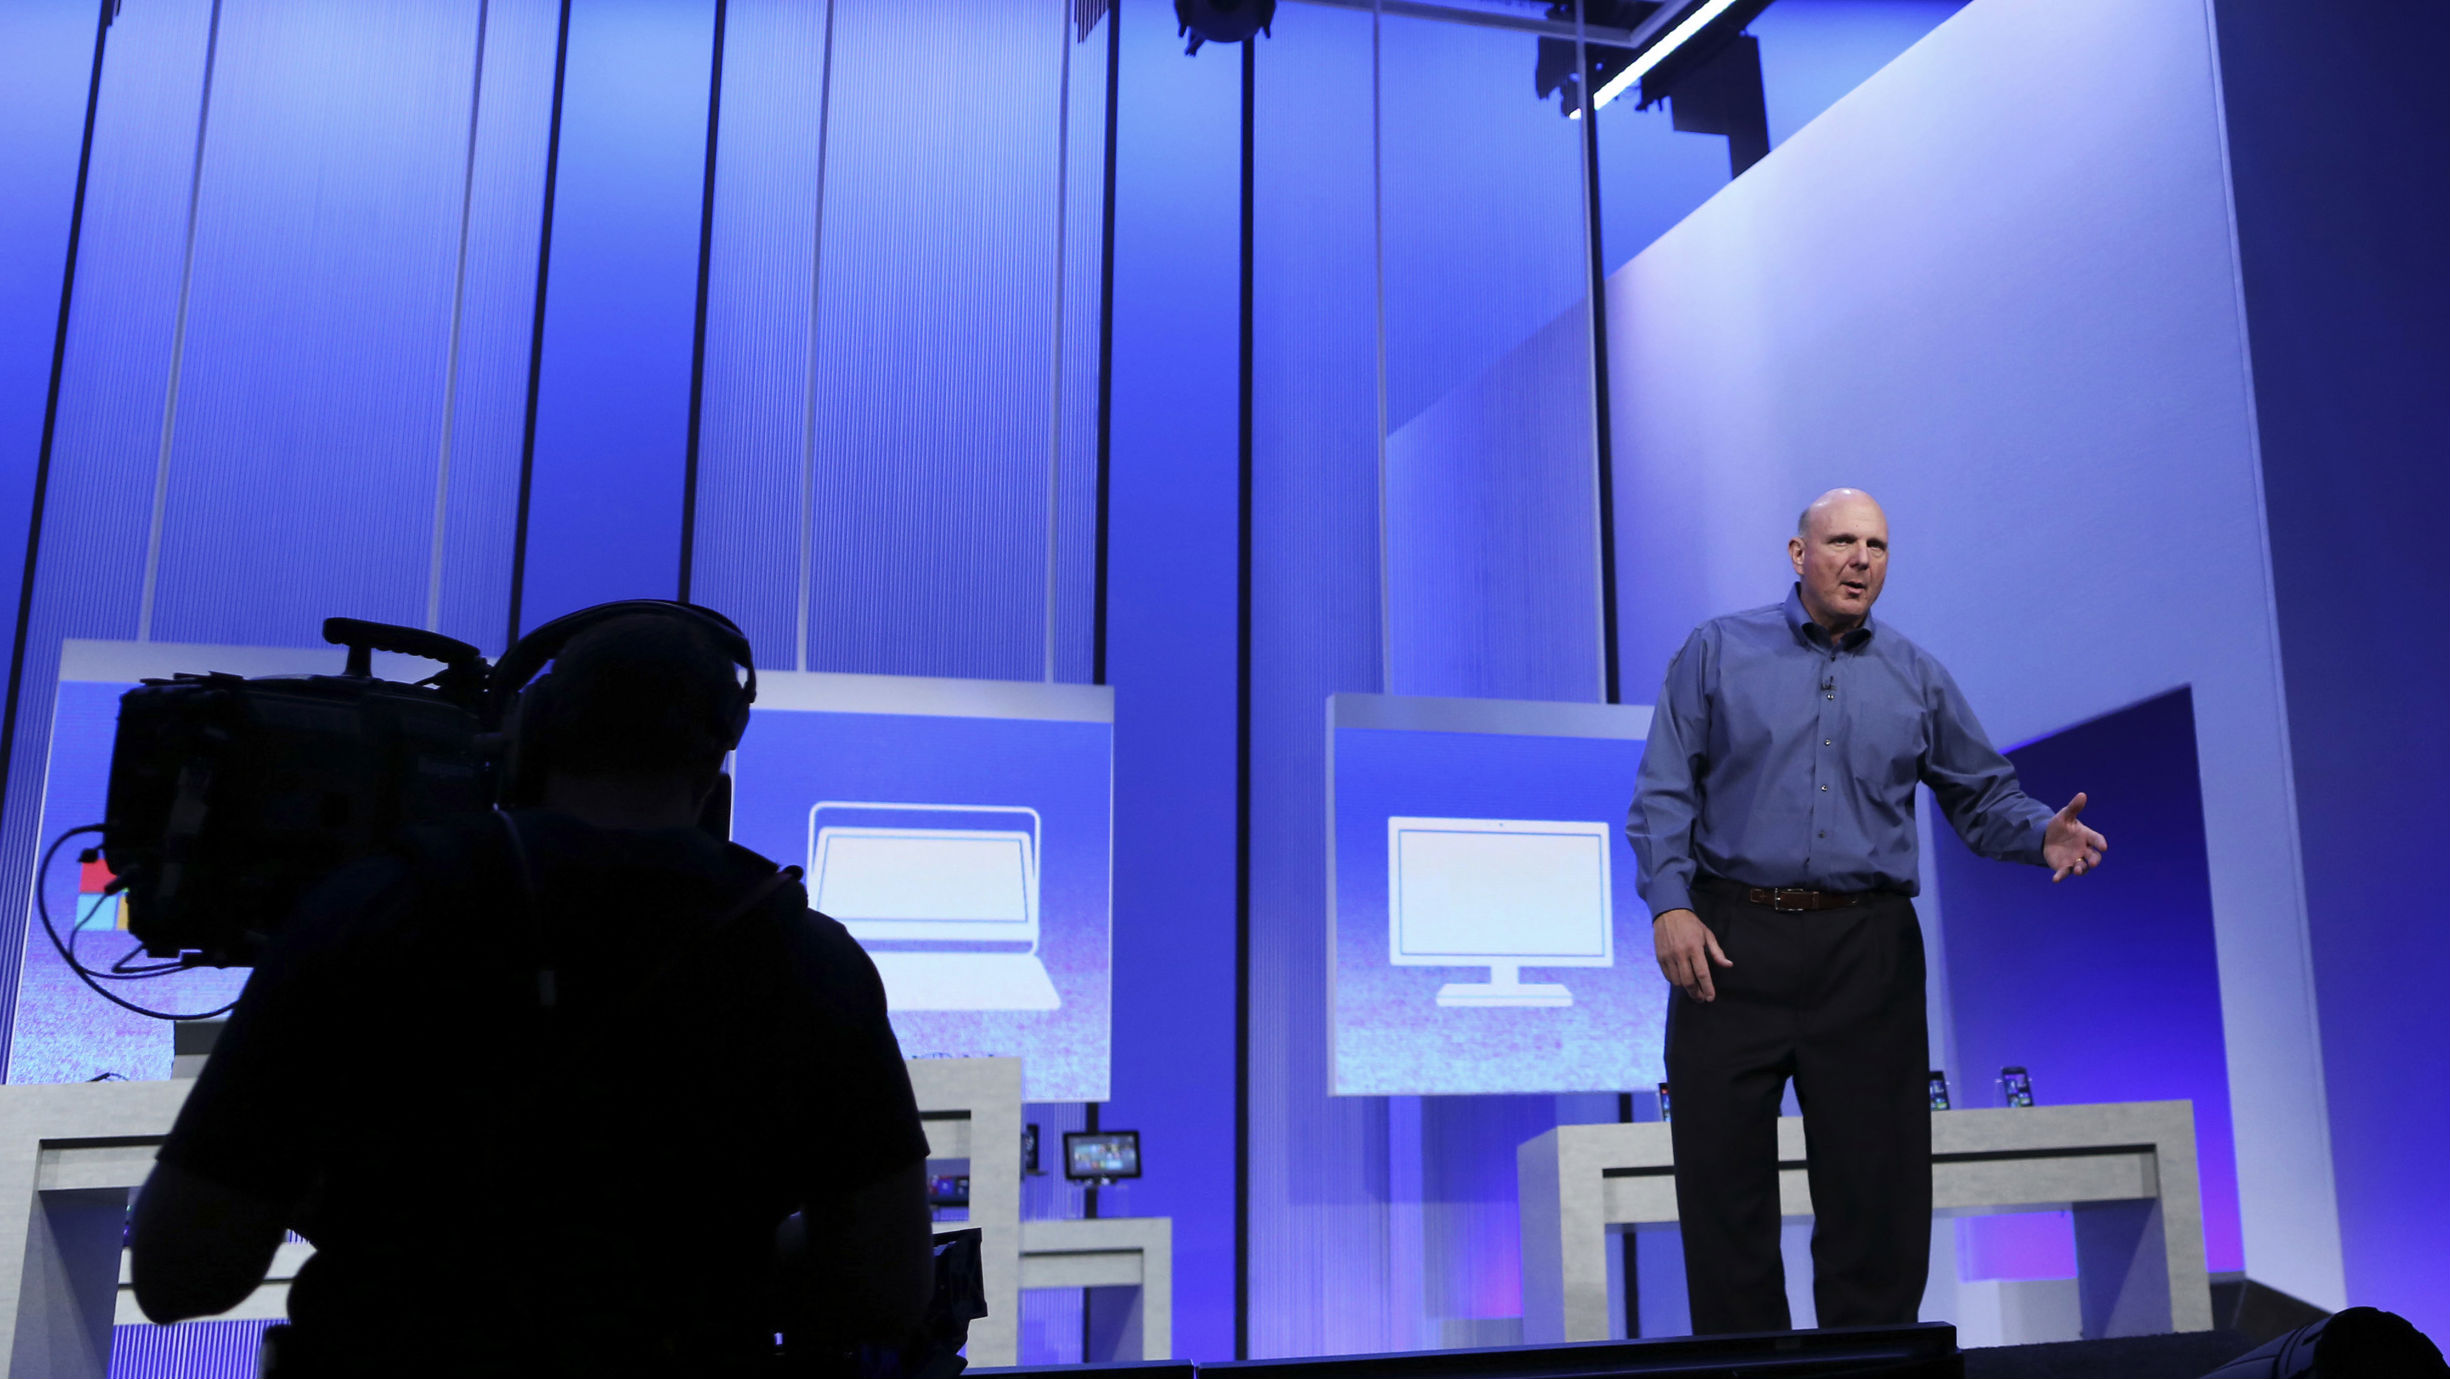 """Microsoft CEO Steve Ballmer gestures during his keynote address at the Microsoft """"Build"""" conference in San Francisco, California June 26, 2013."""